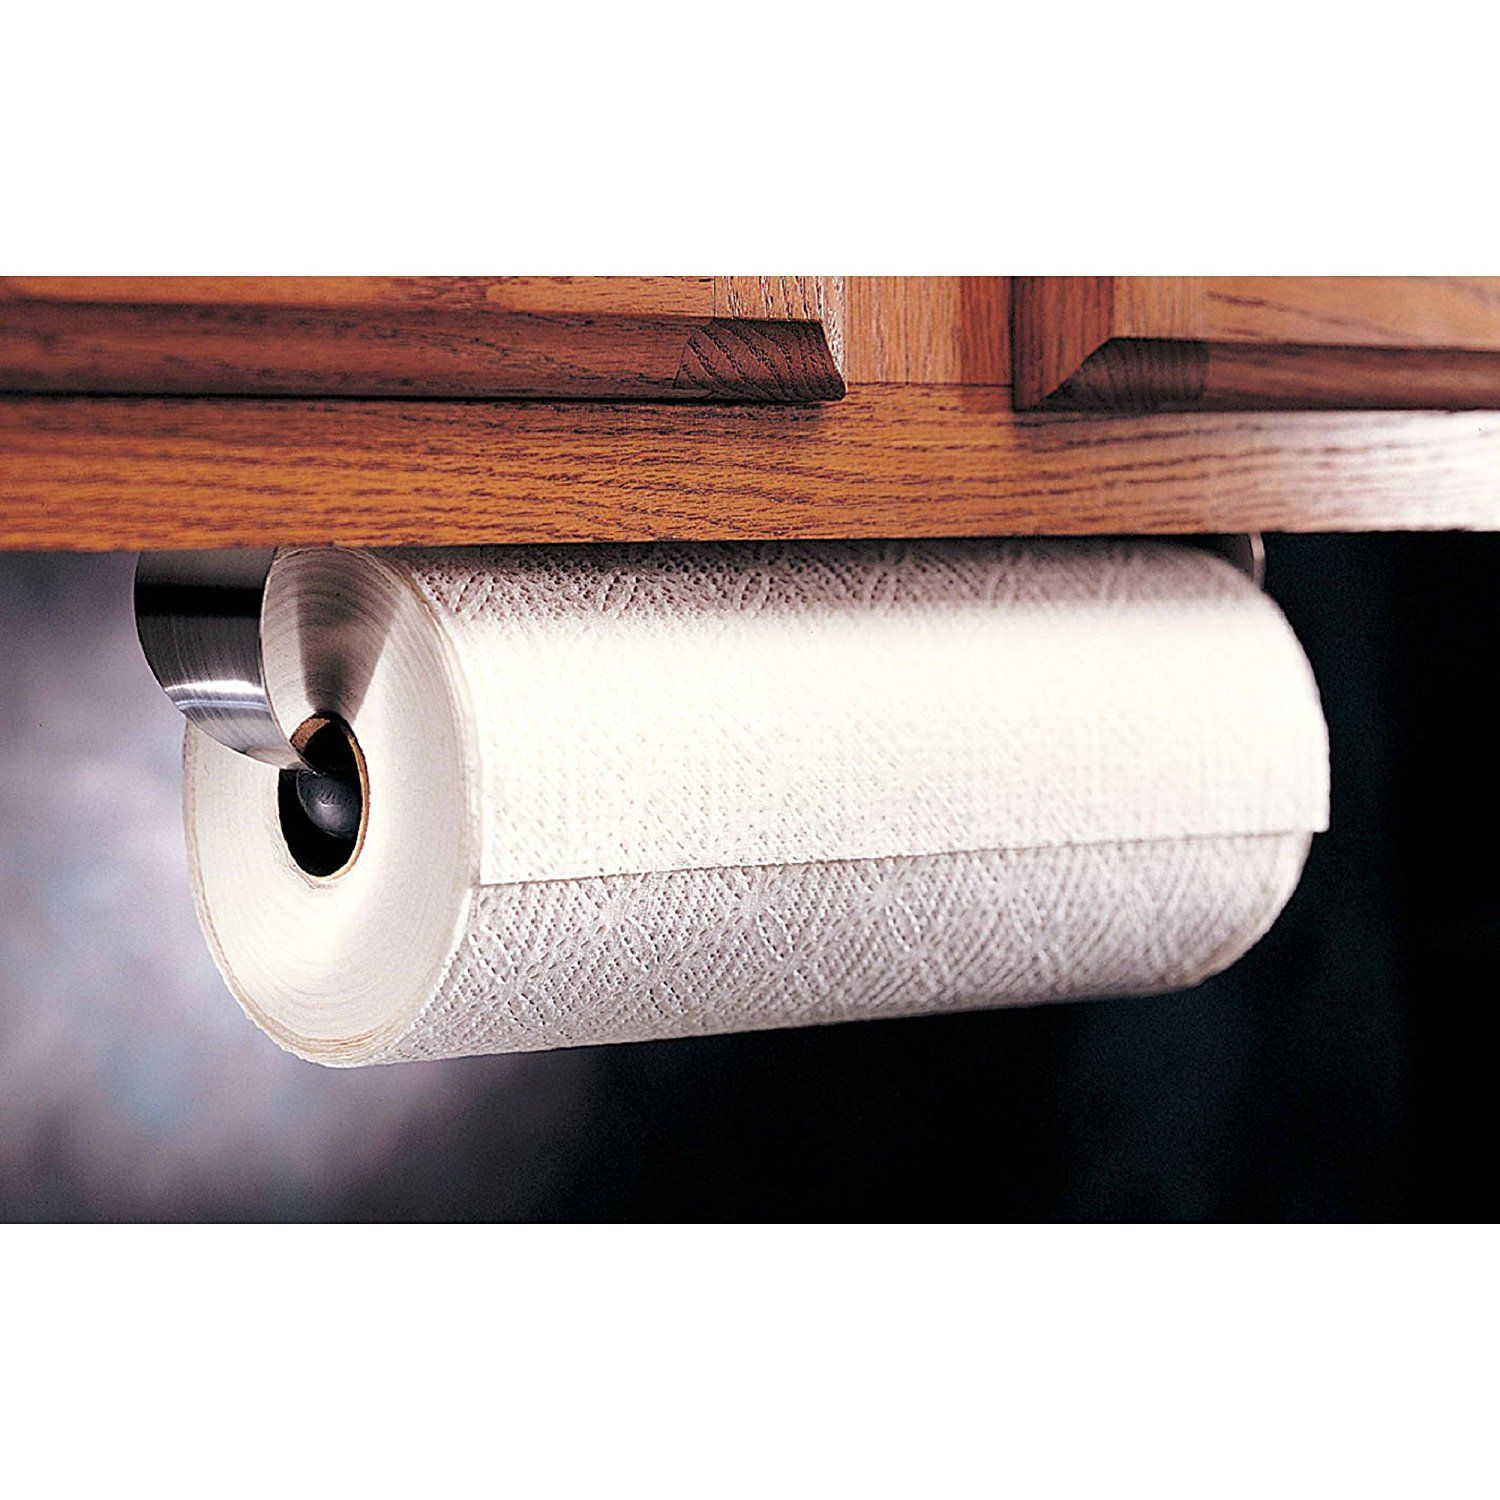 Under The Cabinet Paper Towel Holder Alluring Amazon Prodyne M913 Stainless Steel Under Cabinet Paper Towel Design Ideas